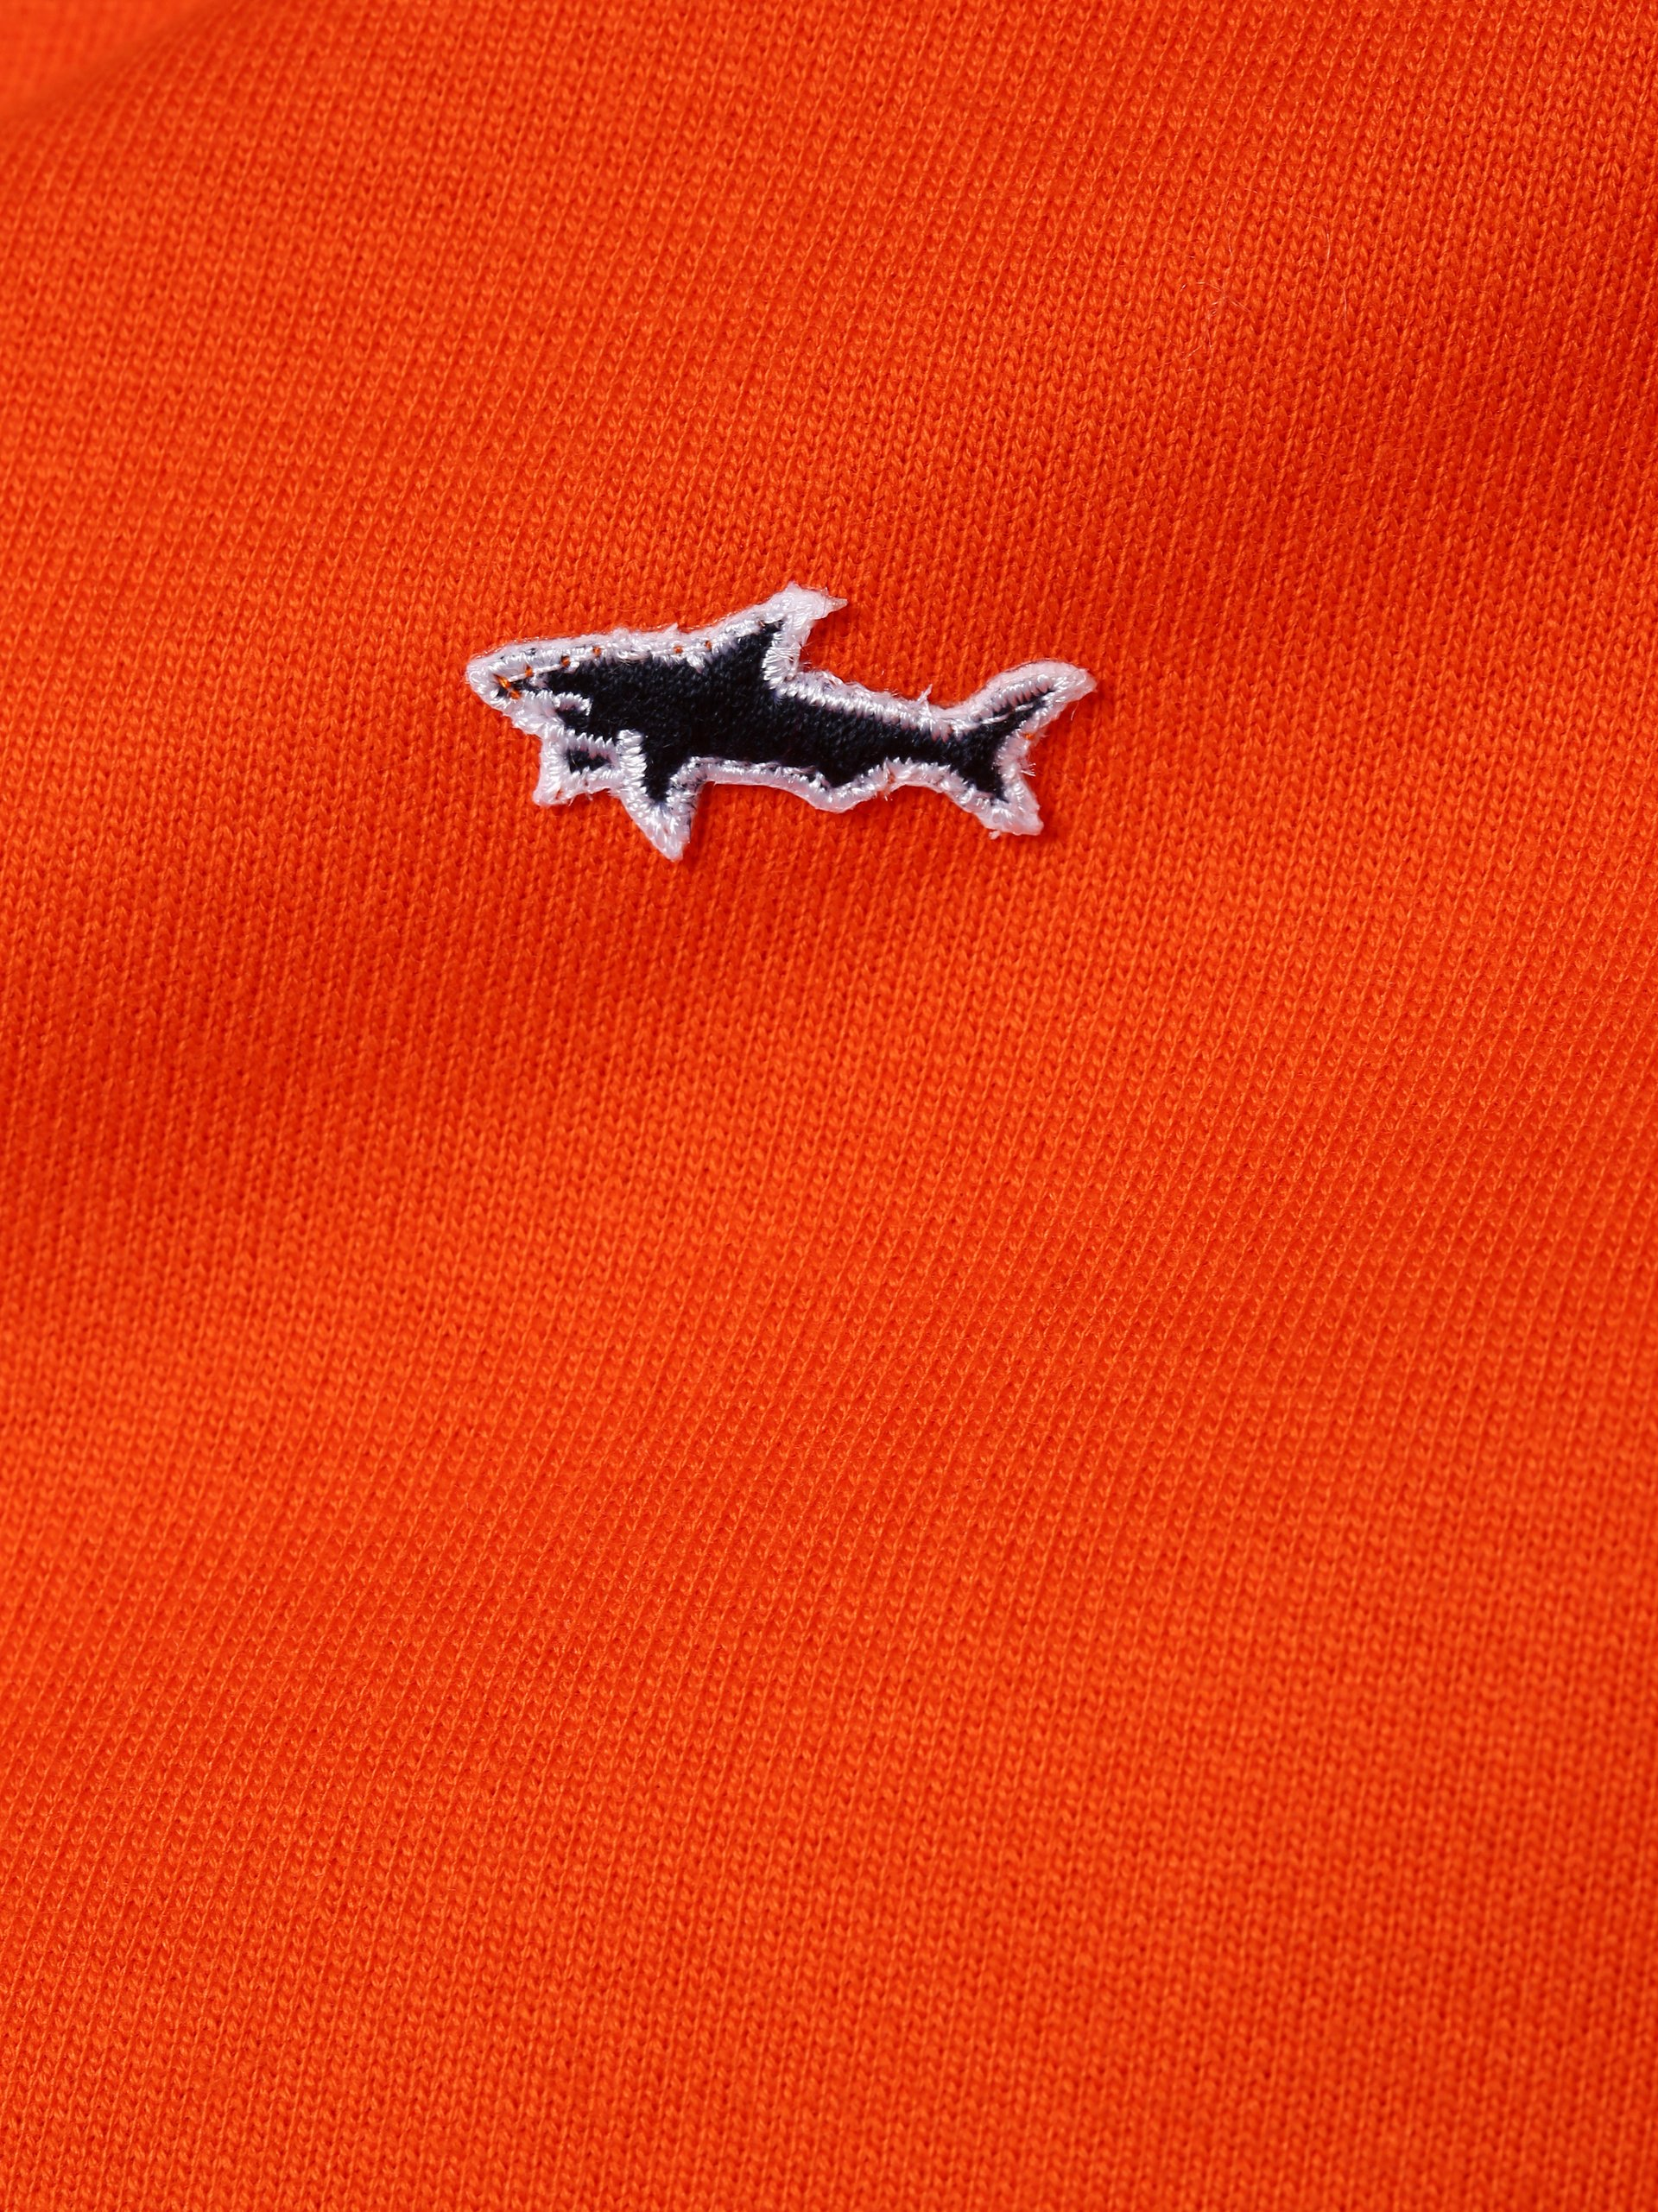 Paul & Shark Herren Sweatshirt